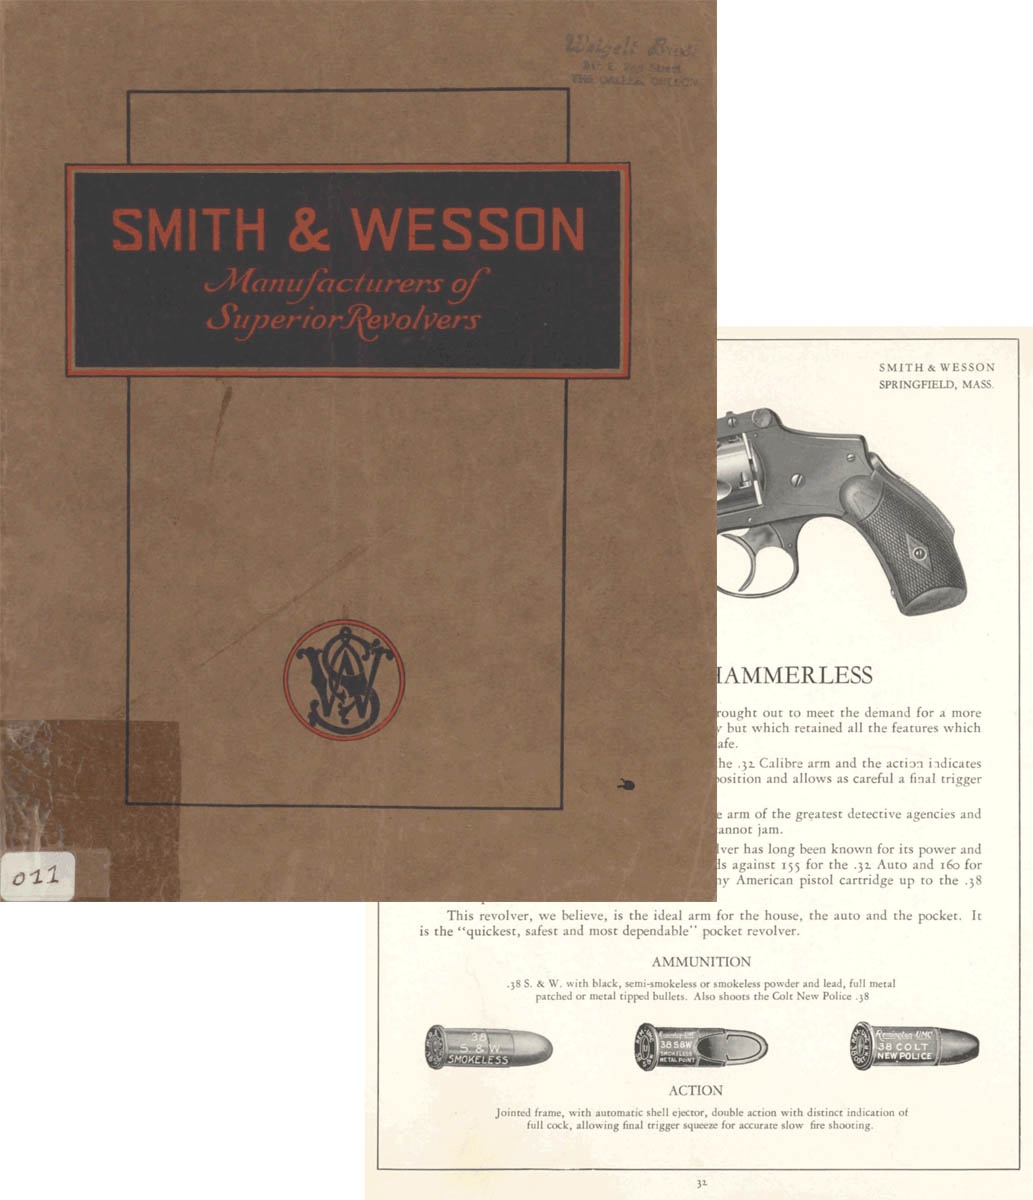 Smith & Wesson 1925 Gun Catalog (re-issued by S&W from 1925 into 1930)